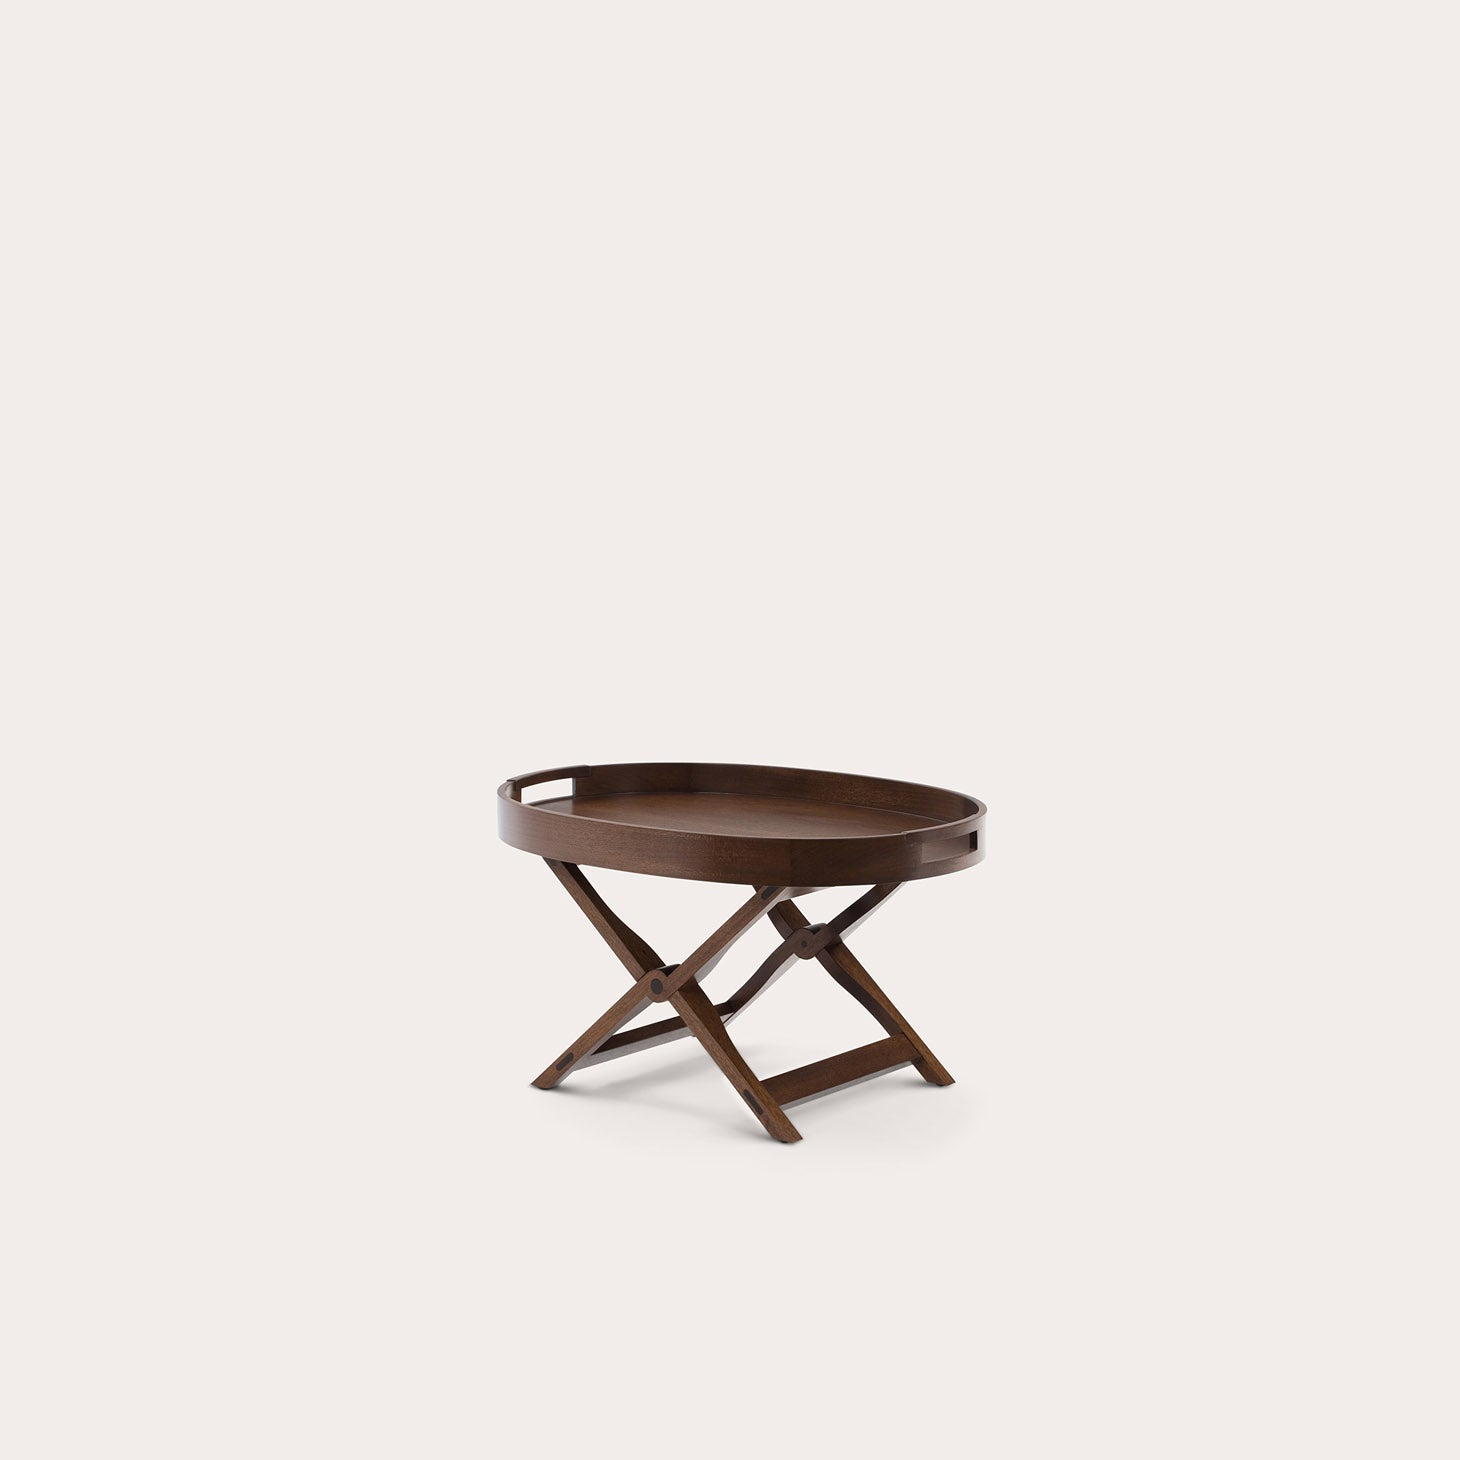 Gaivota Tables Etel Carmona Designer Furniture Sku: 003-230-10055